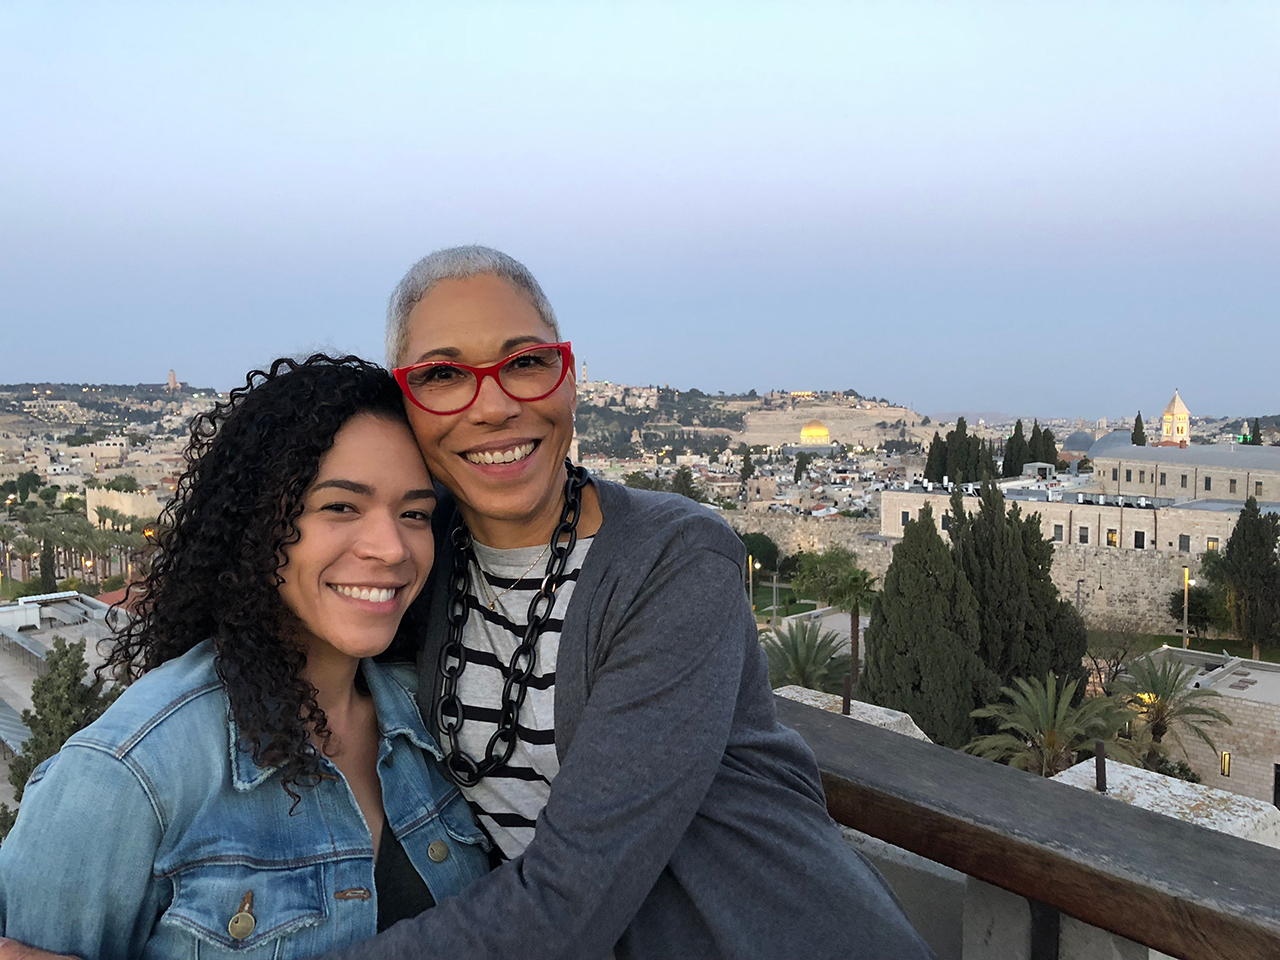 Paula Pretlow (right) with her daughter Alison in Jerusalem.